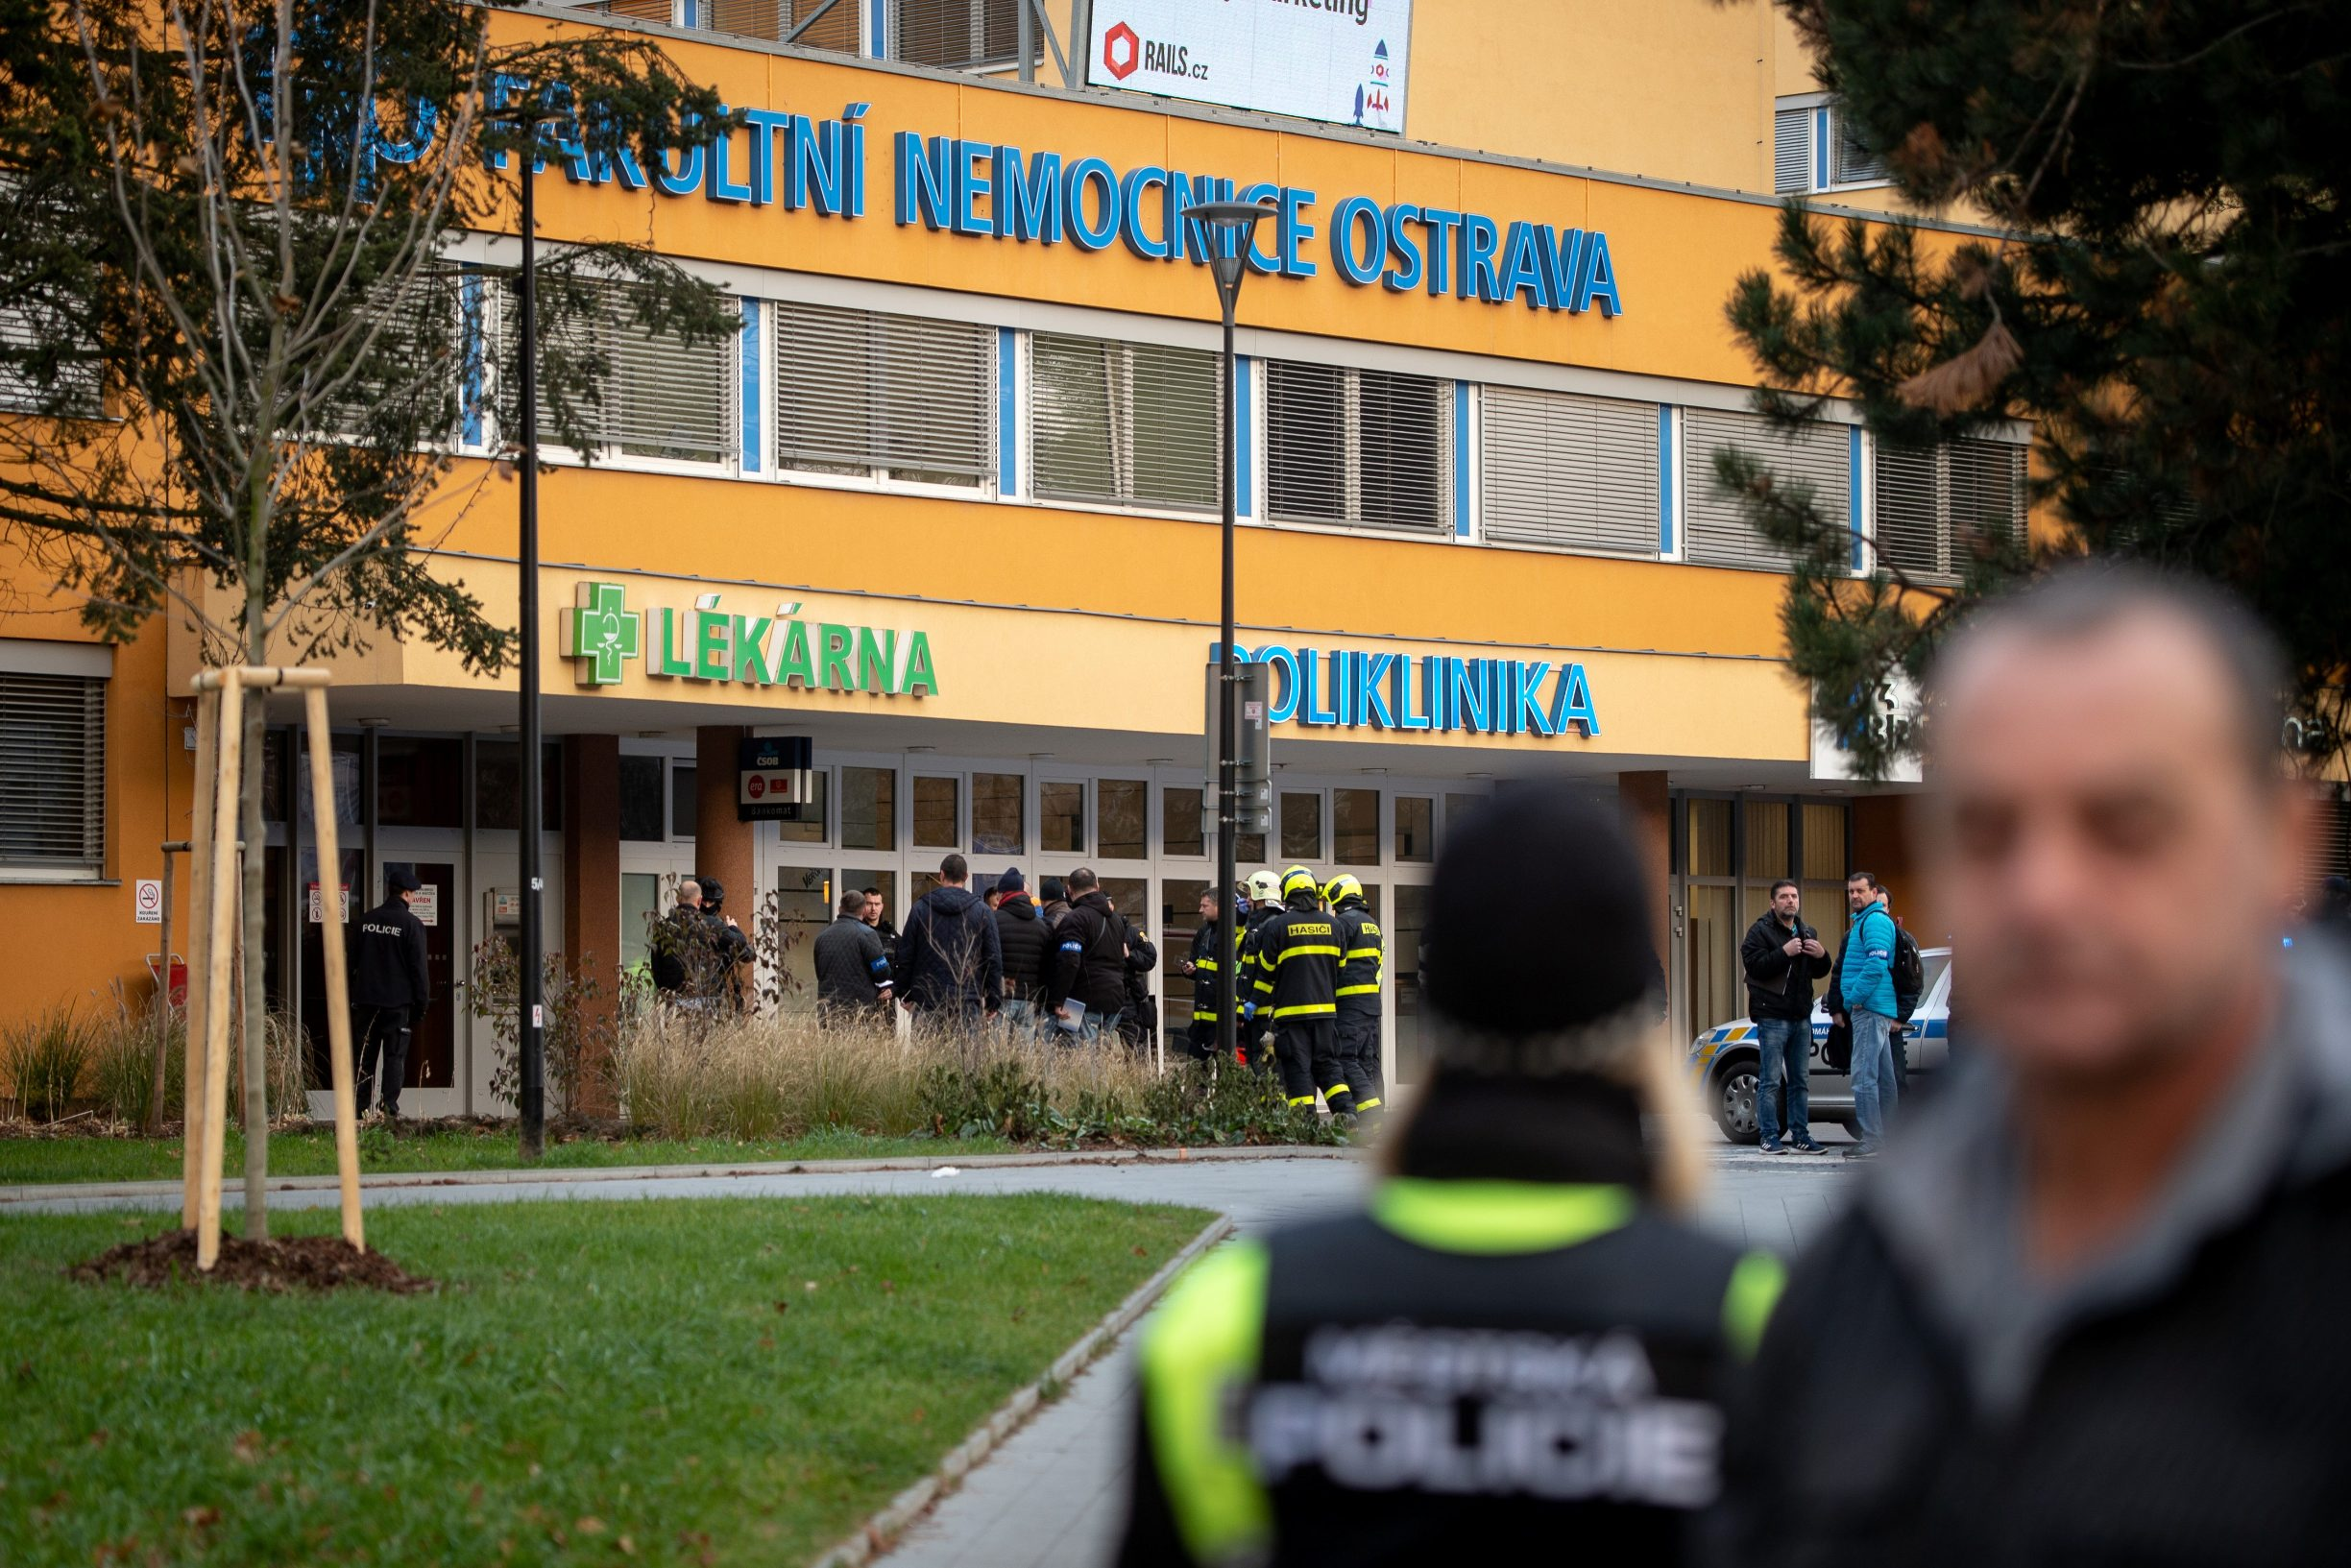 Police officers stand guard near the site of a shooting in front of a hospital in Ostrava, Czech Republic, December 10, 2019.   REUTERS/Lukas Kabon